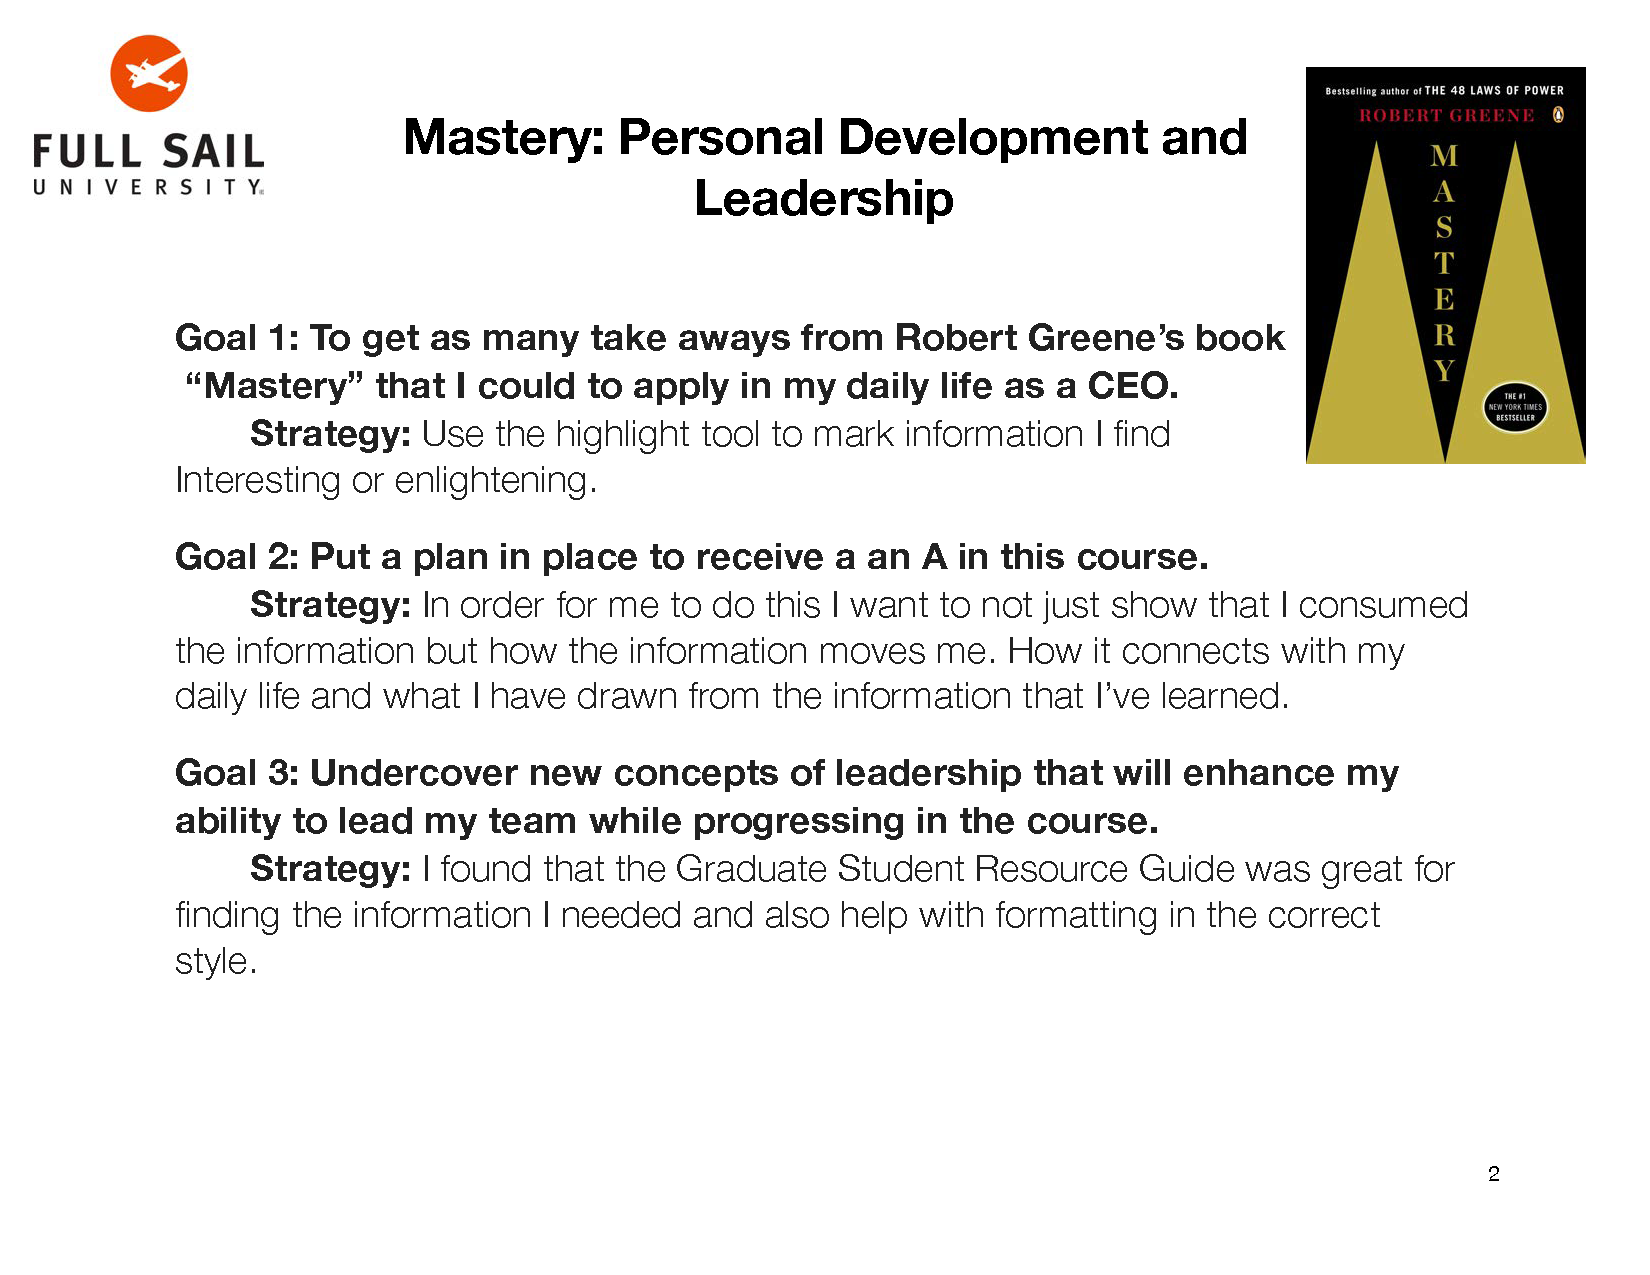 4.2 Assignment- Mastery Journey Timeline copy_Page_02.png